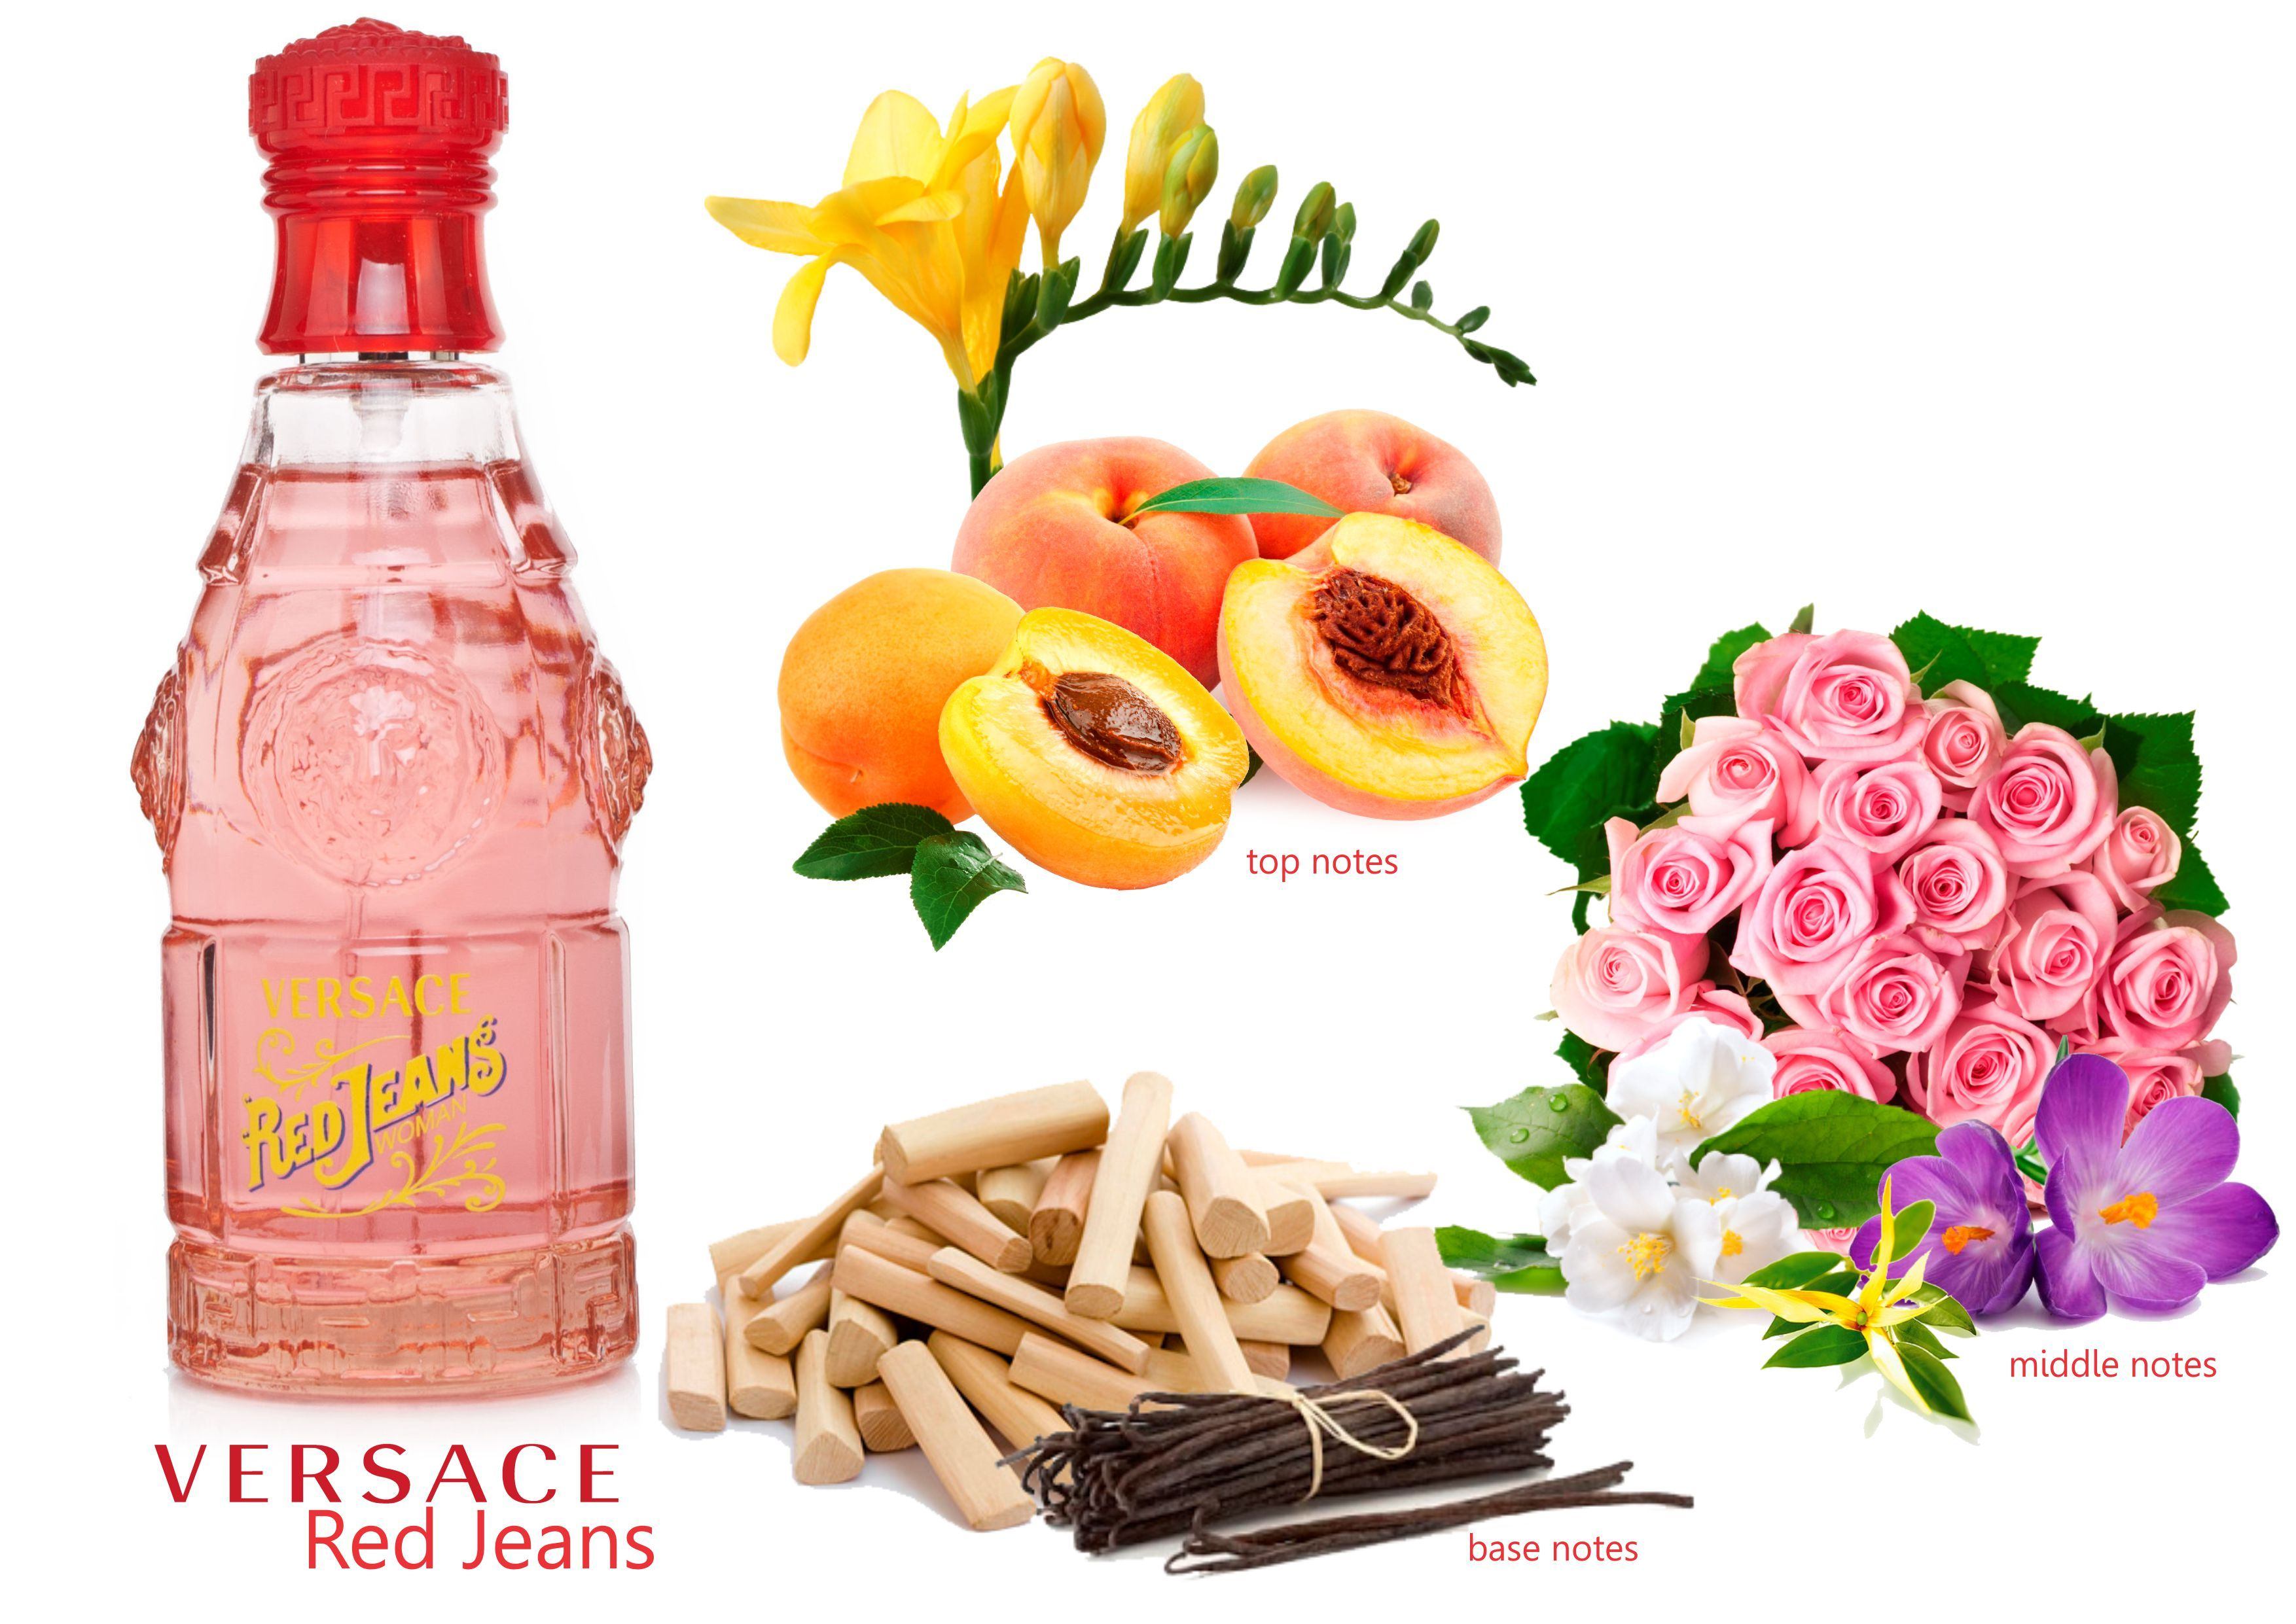 Versace Red Jeans | Homemade perfume, Essential oil perfumes recipes,  Perfume recipes